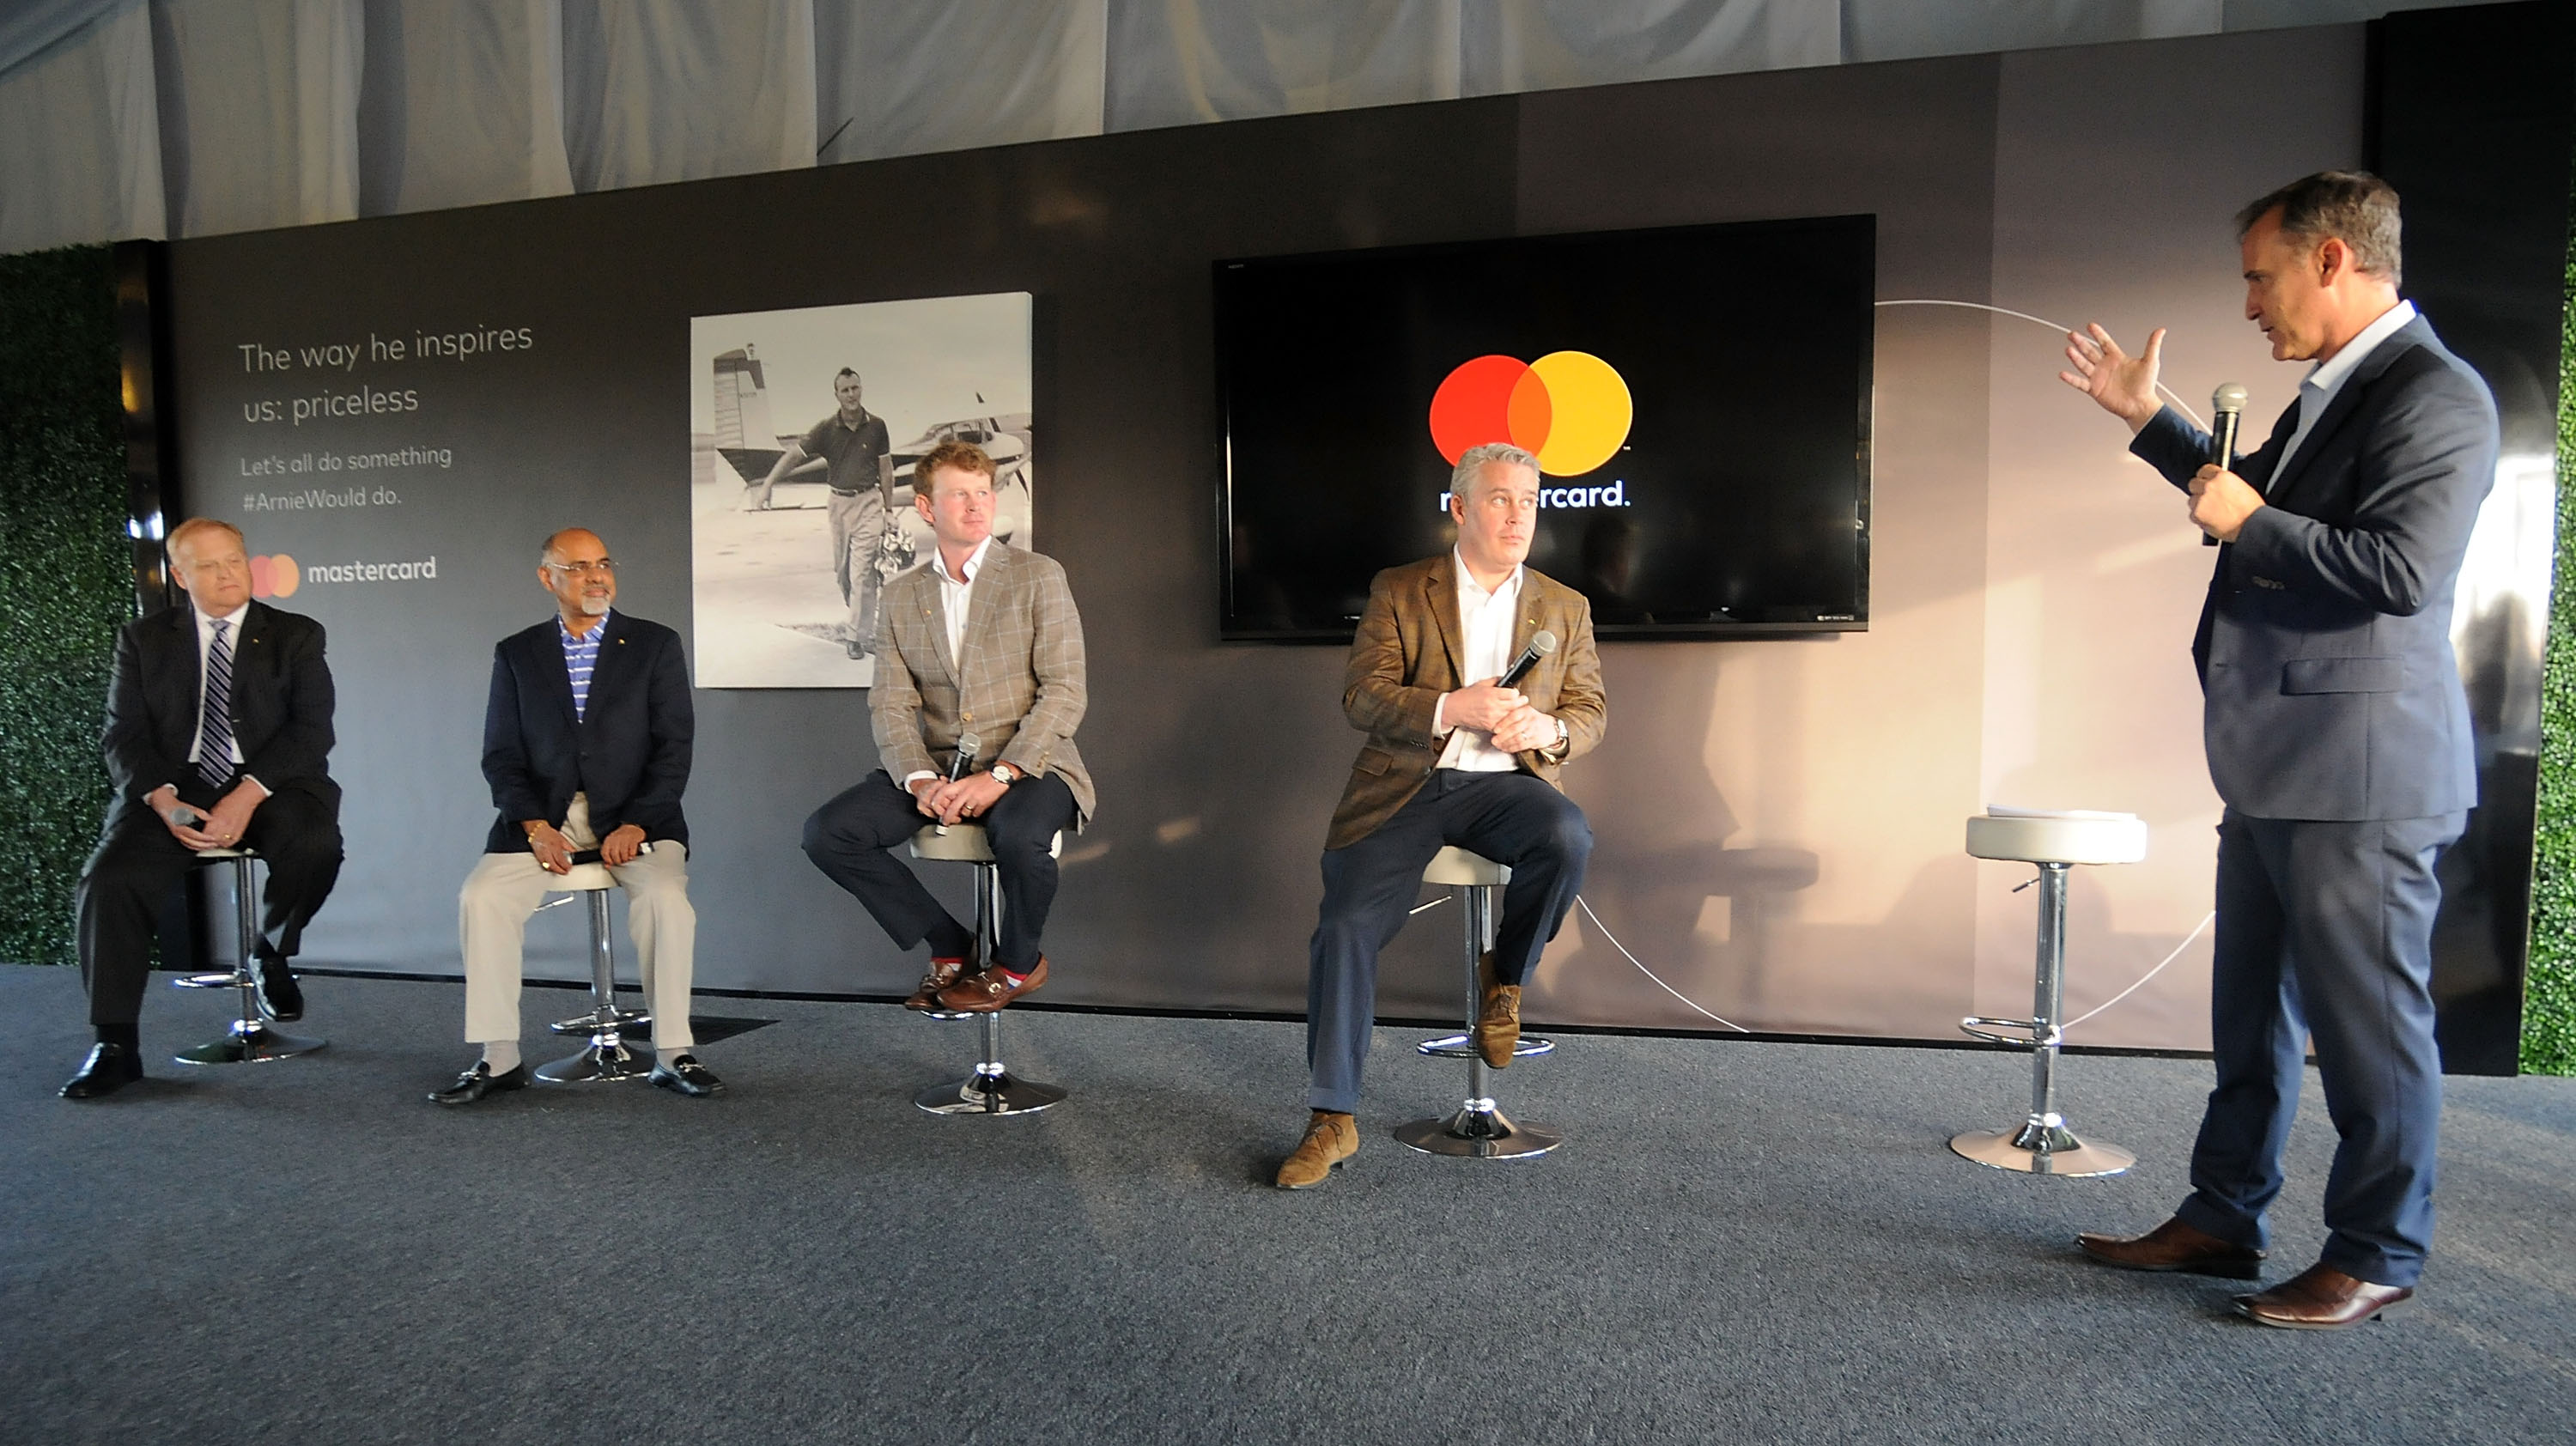 Arnold Palmer's Legacy is Honored at an Event at the Masterpass Club During the Arnold Palmer Invitational Presented by Mastercard - Day 1